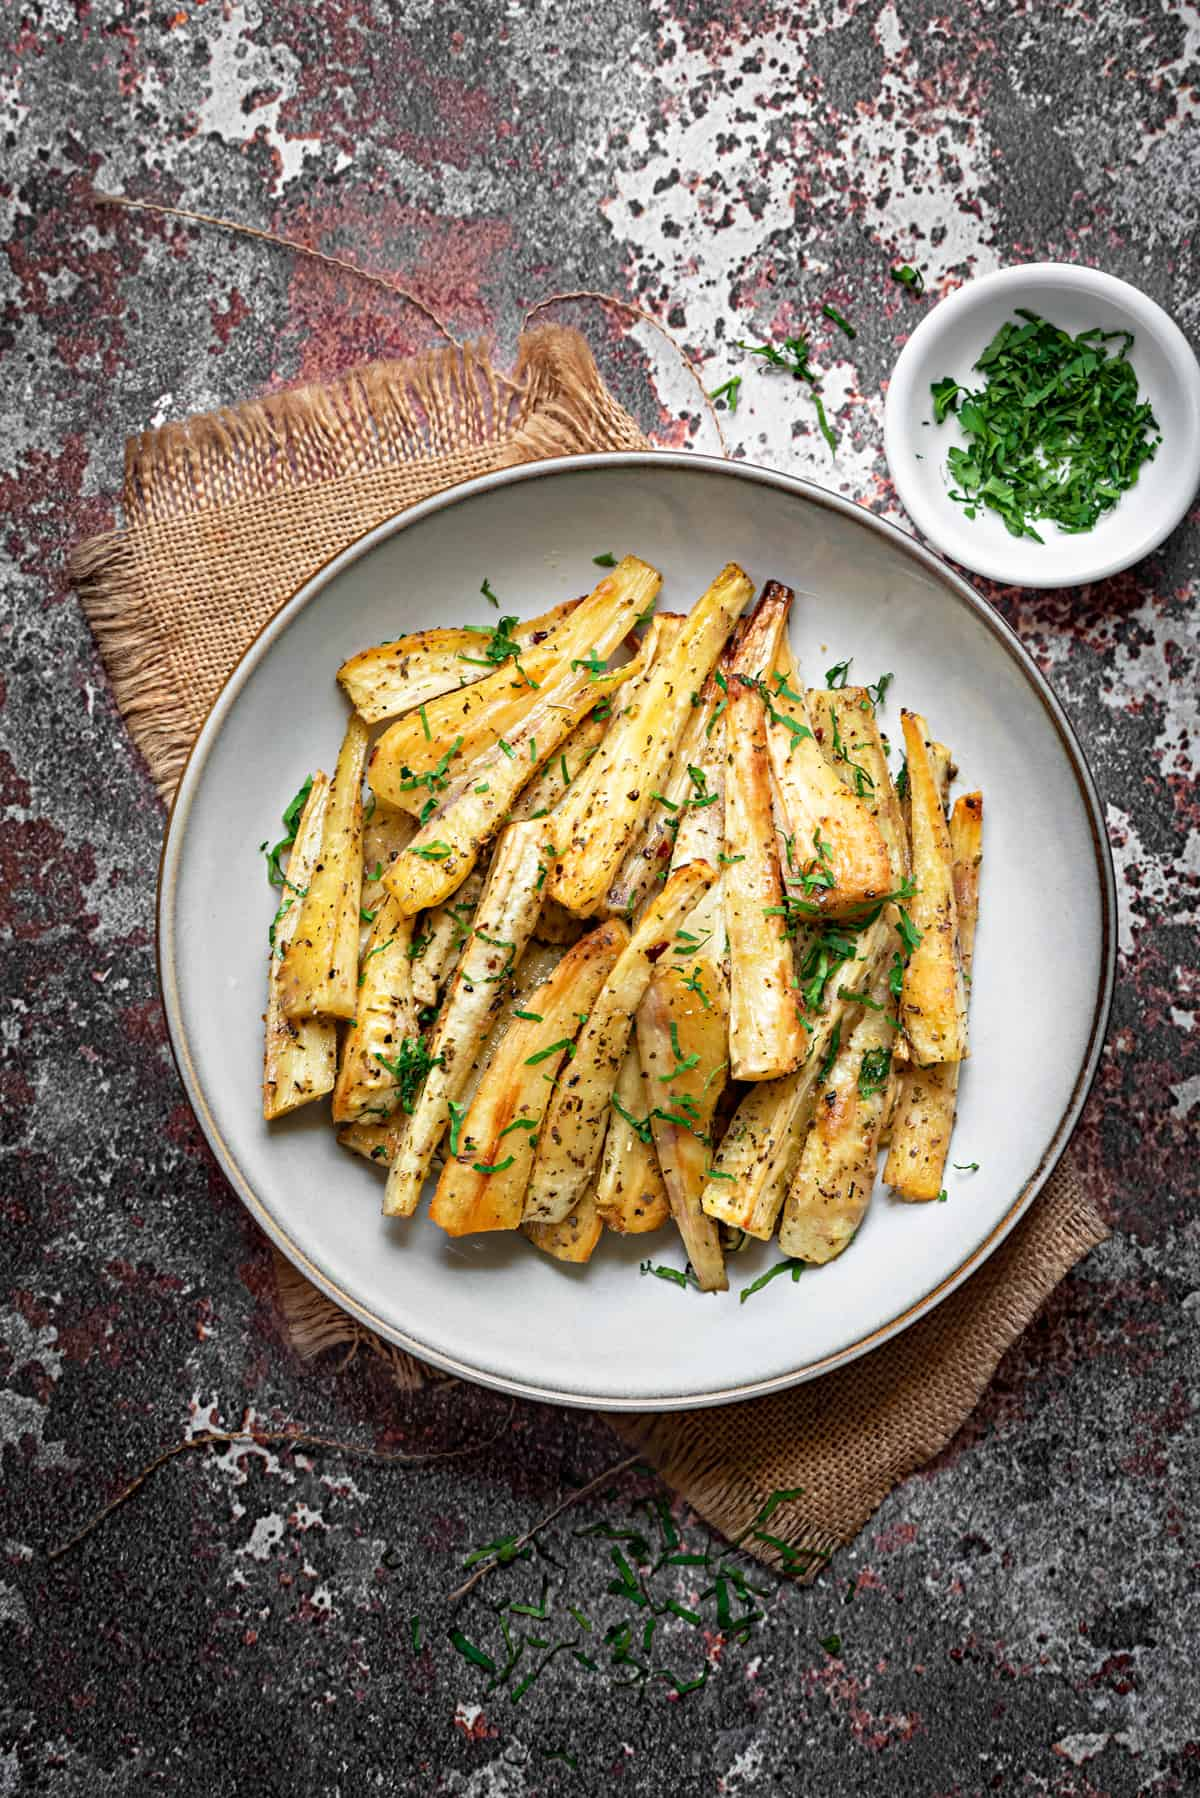 golden brown roasted parsnip batons on a white plate with fresh parsley garnish